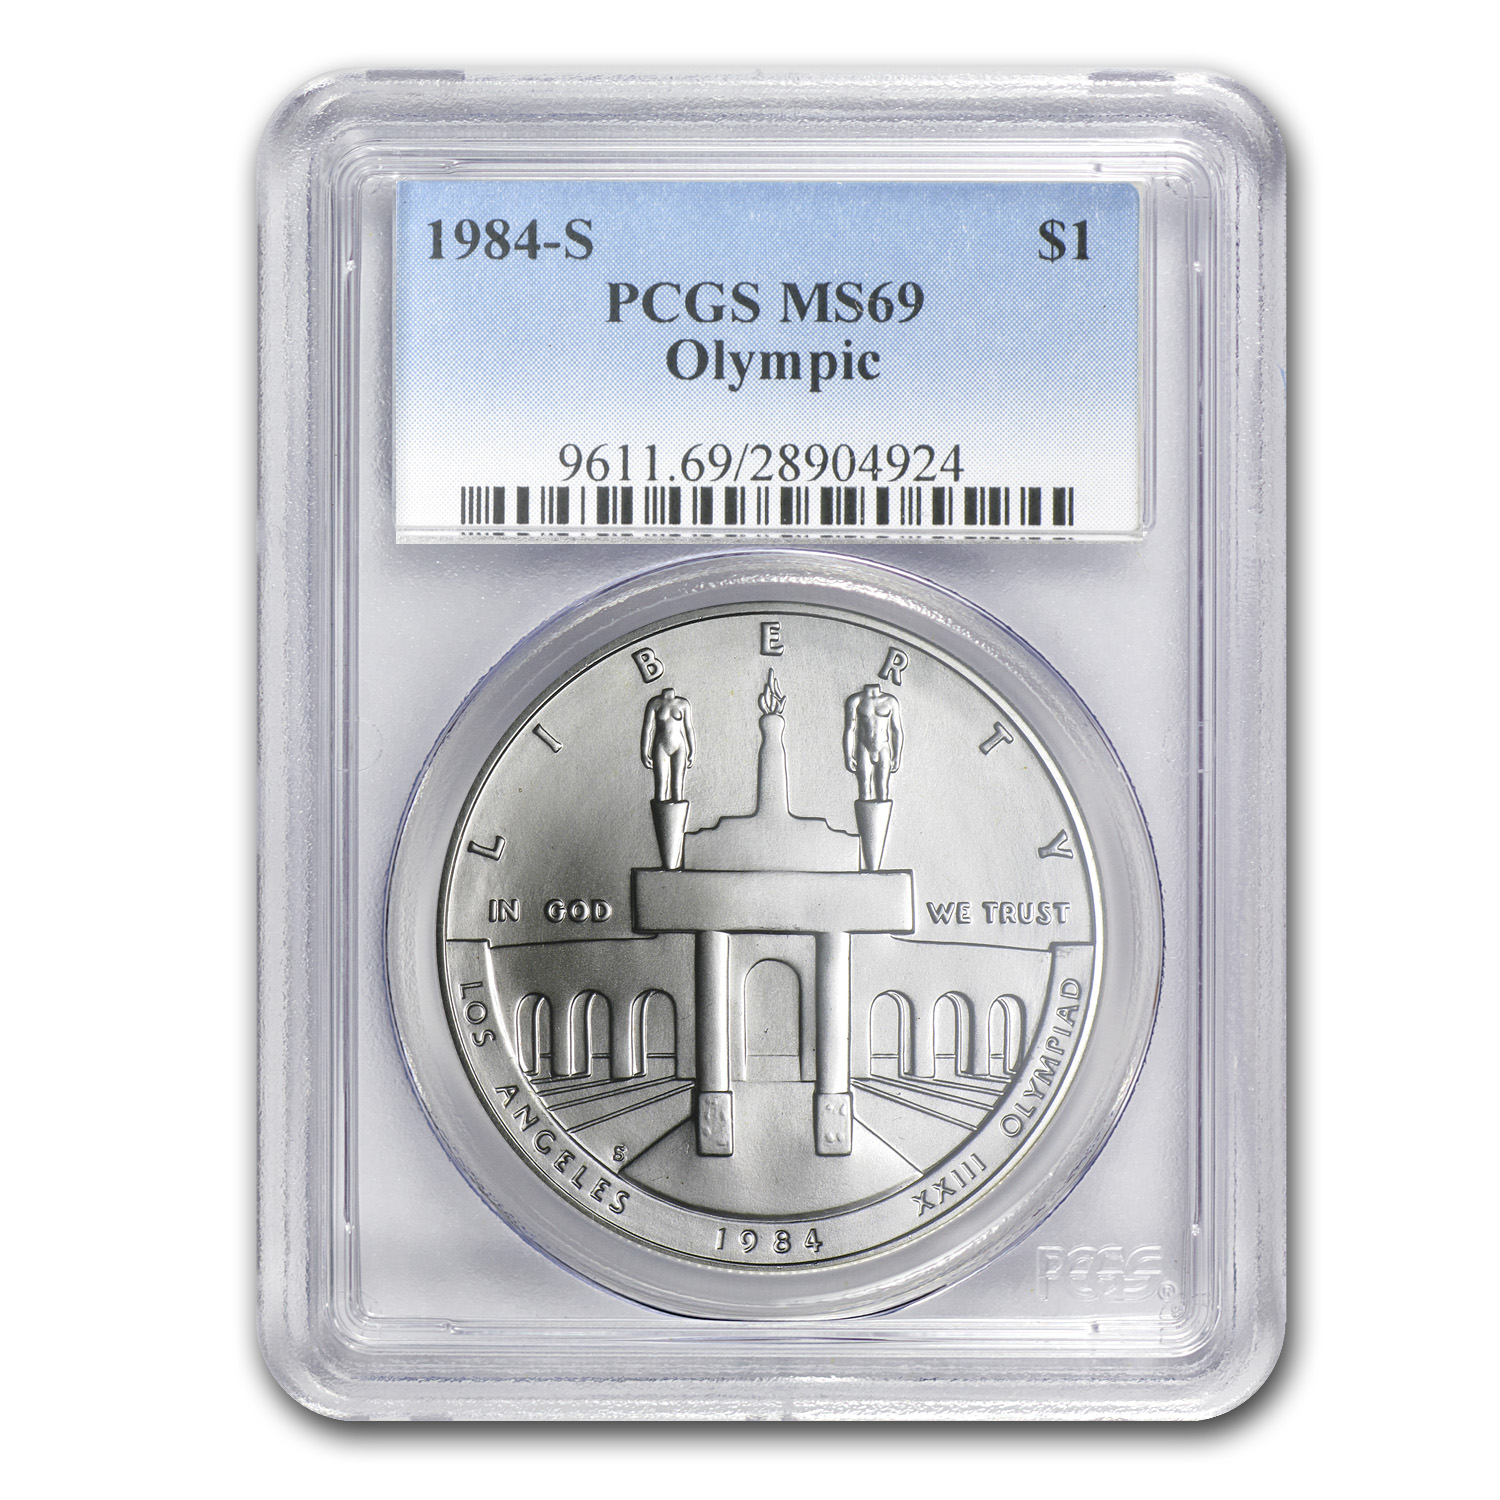 1984-S Olympic $1 Silver Commem MS-69 PCGS